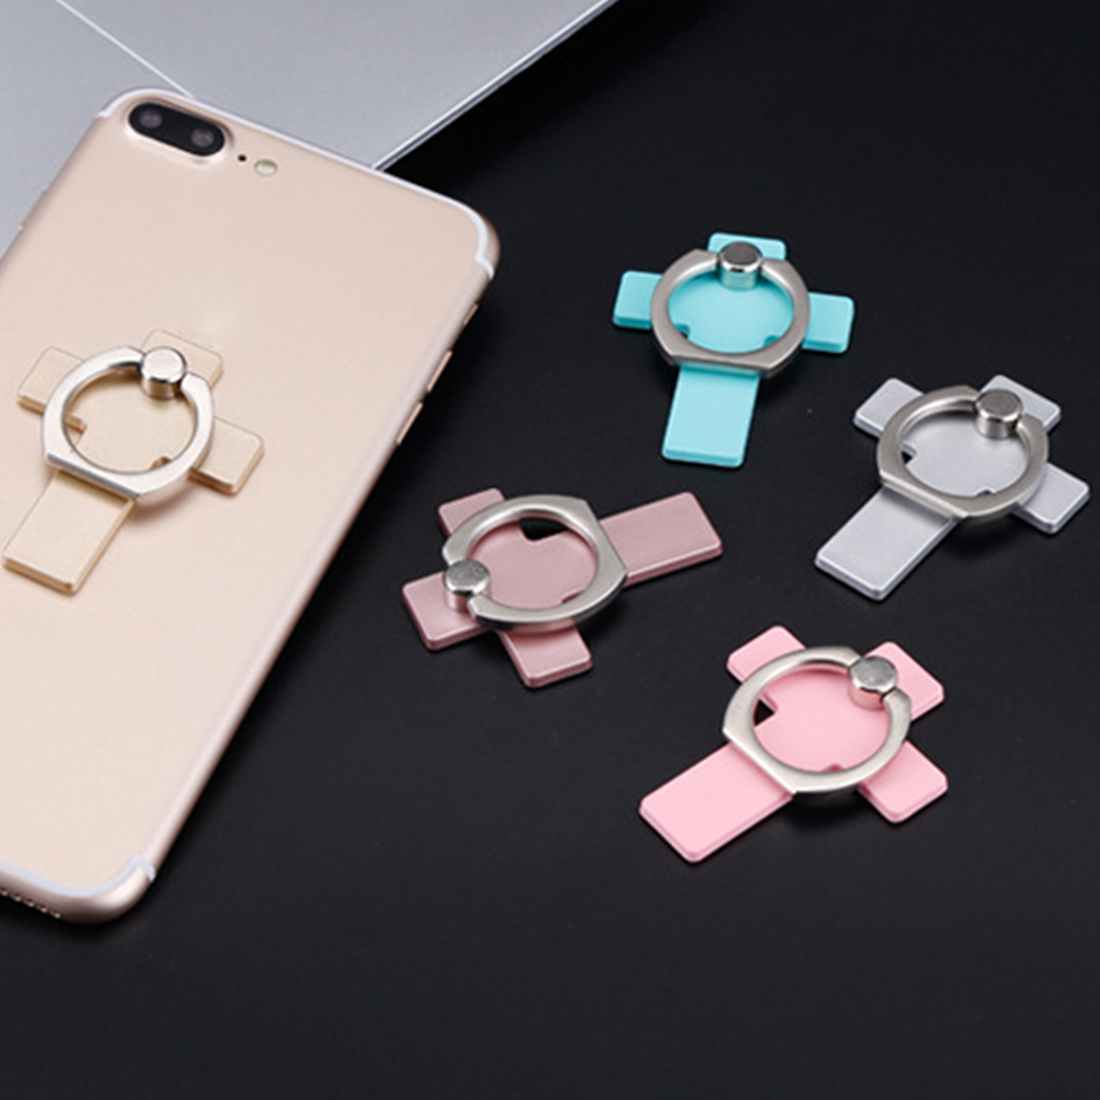 Etmakit Phone Stand 360 Degree cross Metal Finger Ring Smartphone Stand Holder mobile phone cstand For iPhone iPad Xiaomi